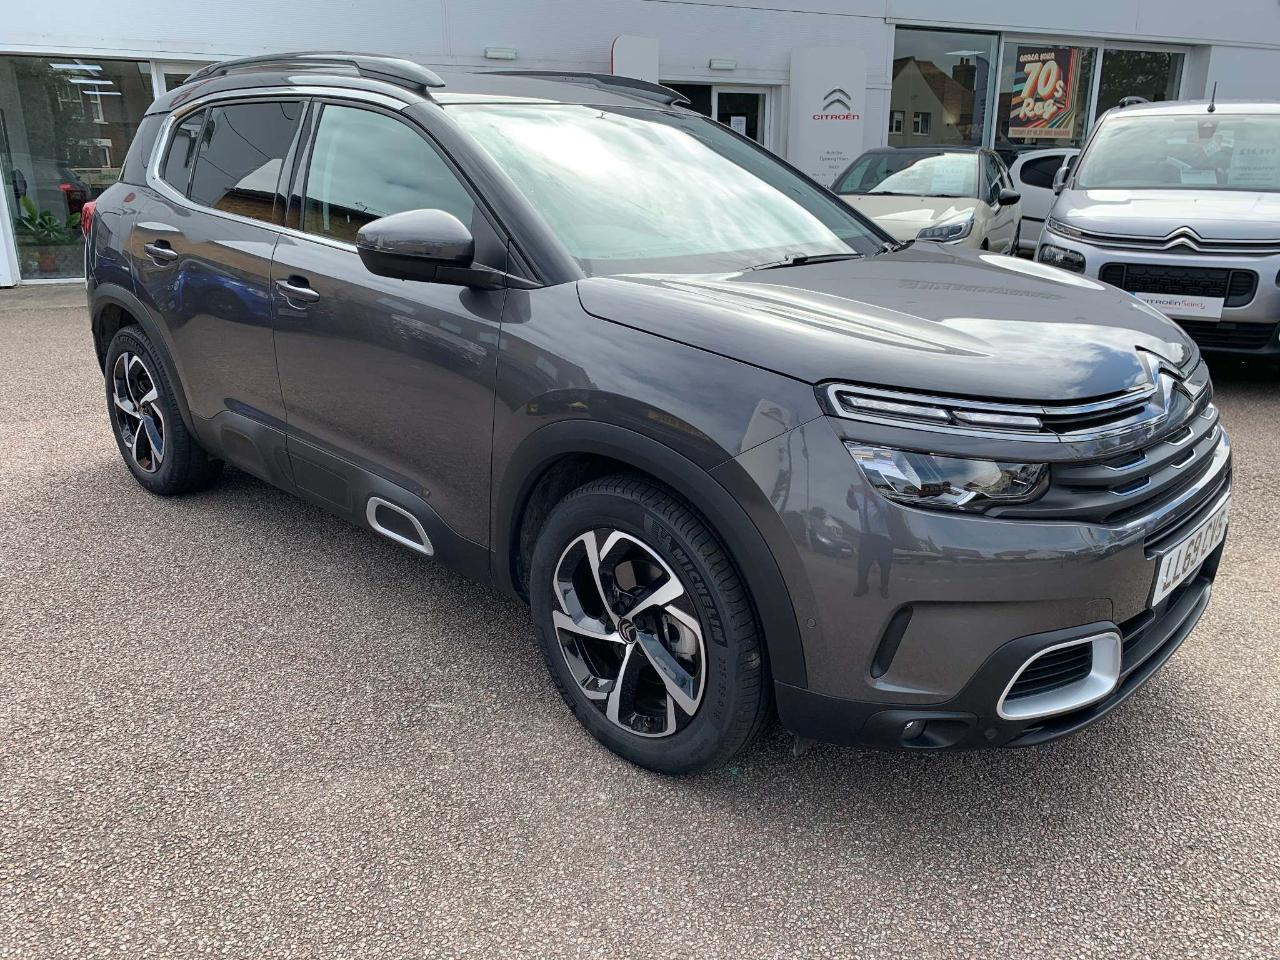 Citroën C5 Aircross SUV C5 AIRCROSS 1.6 PureTech Flair EAT8 (s/s) 5dr